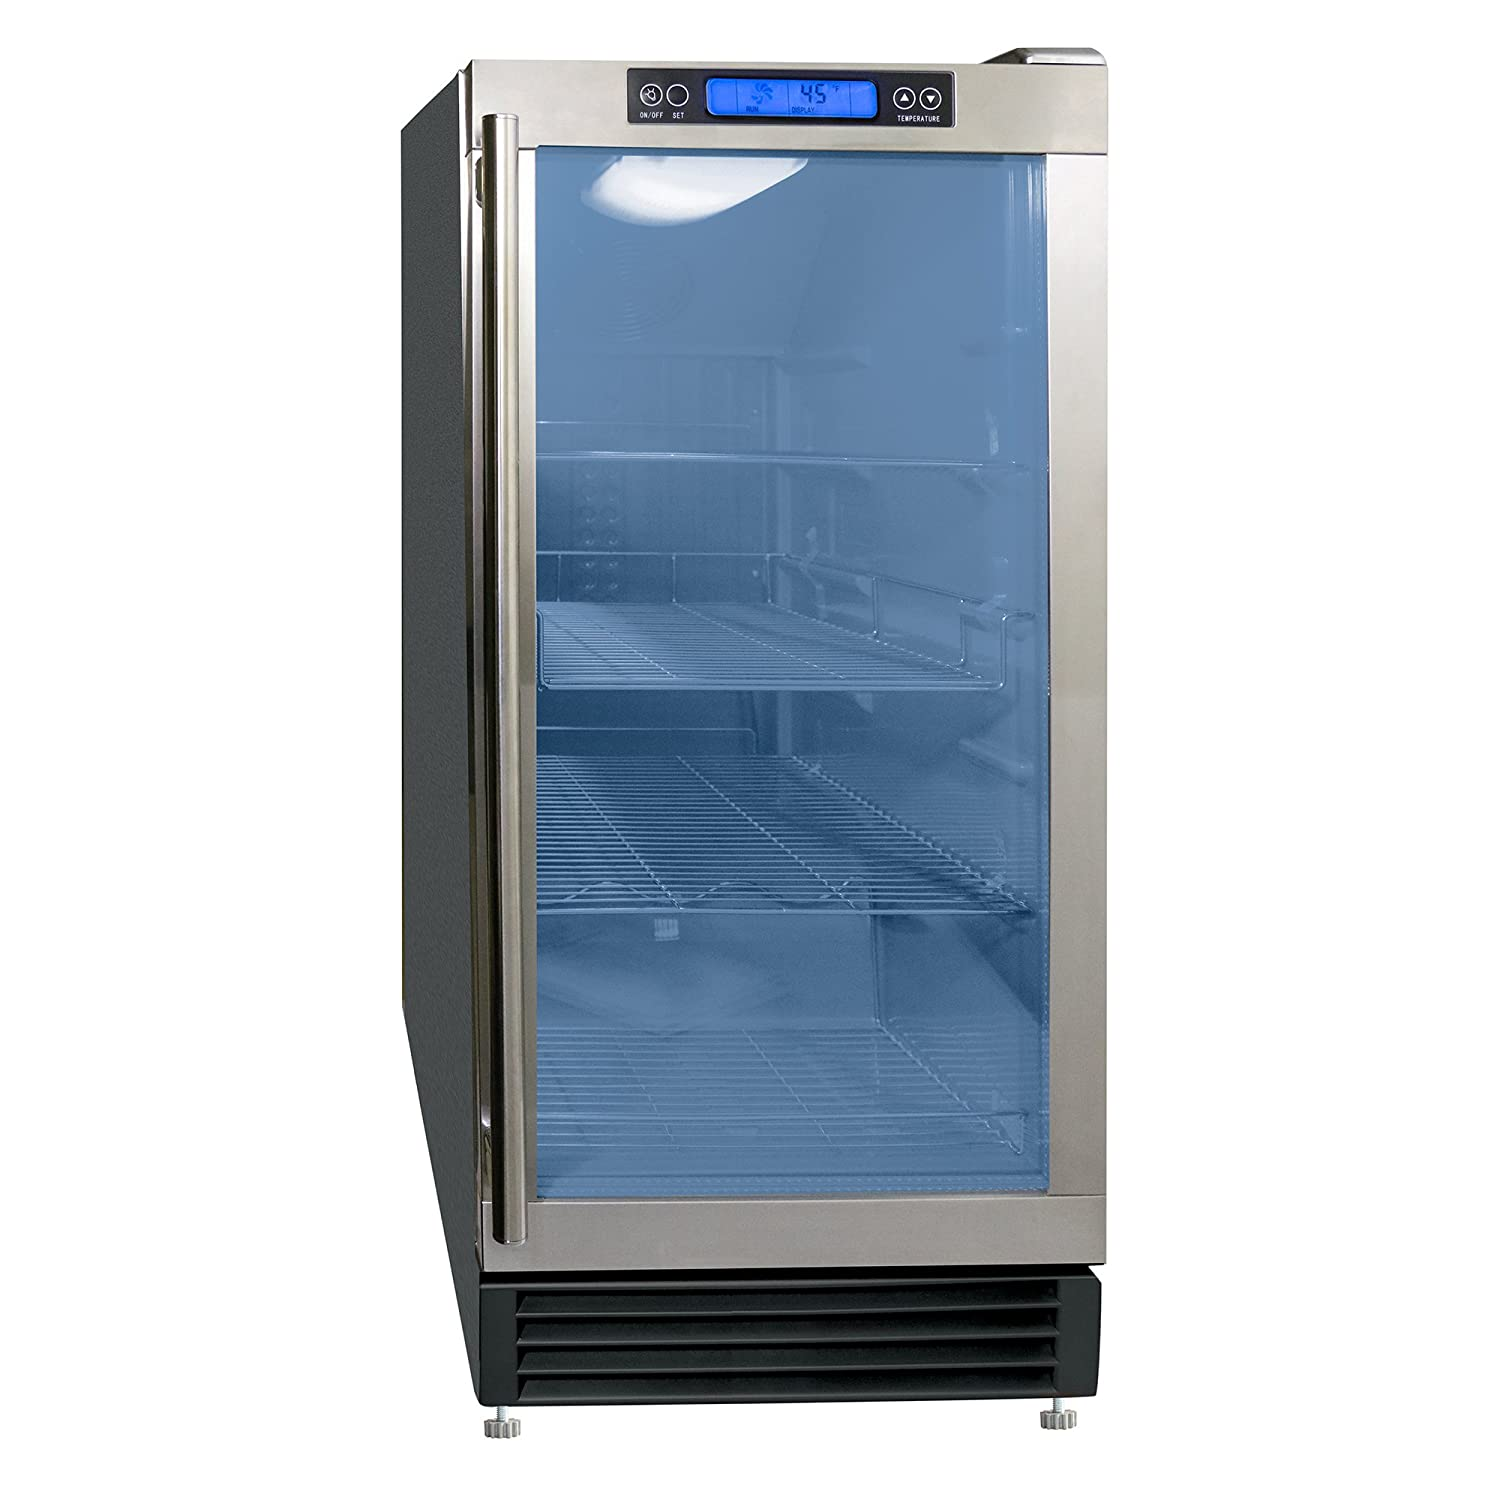 Maxx Ice Indoor Built-In Glass Door Beverage Refrigerator Cooler Center with Internal LED and Digital Controller, Black